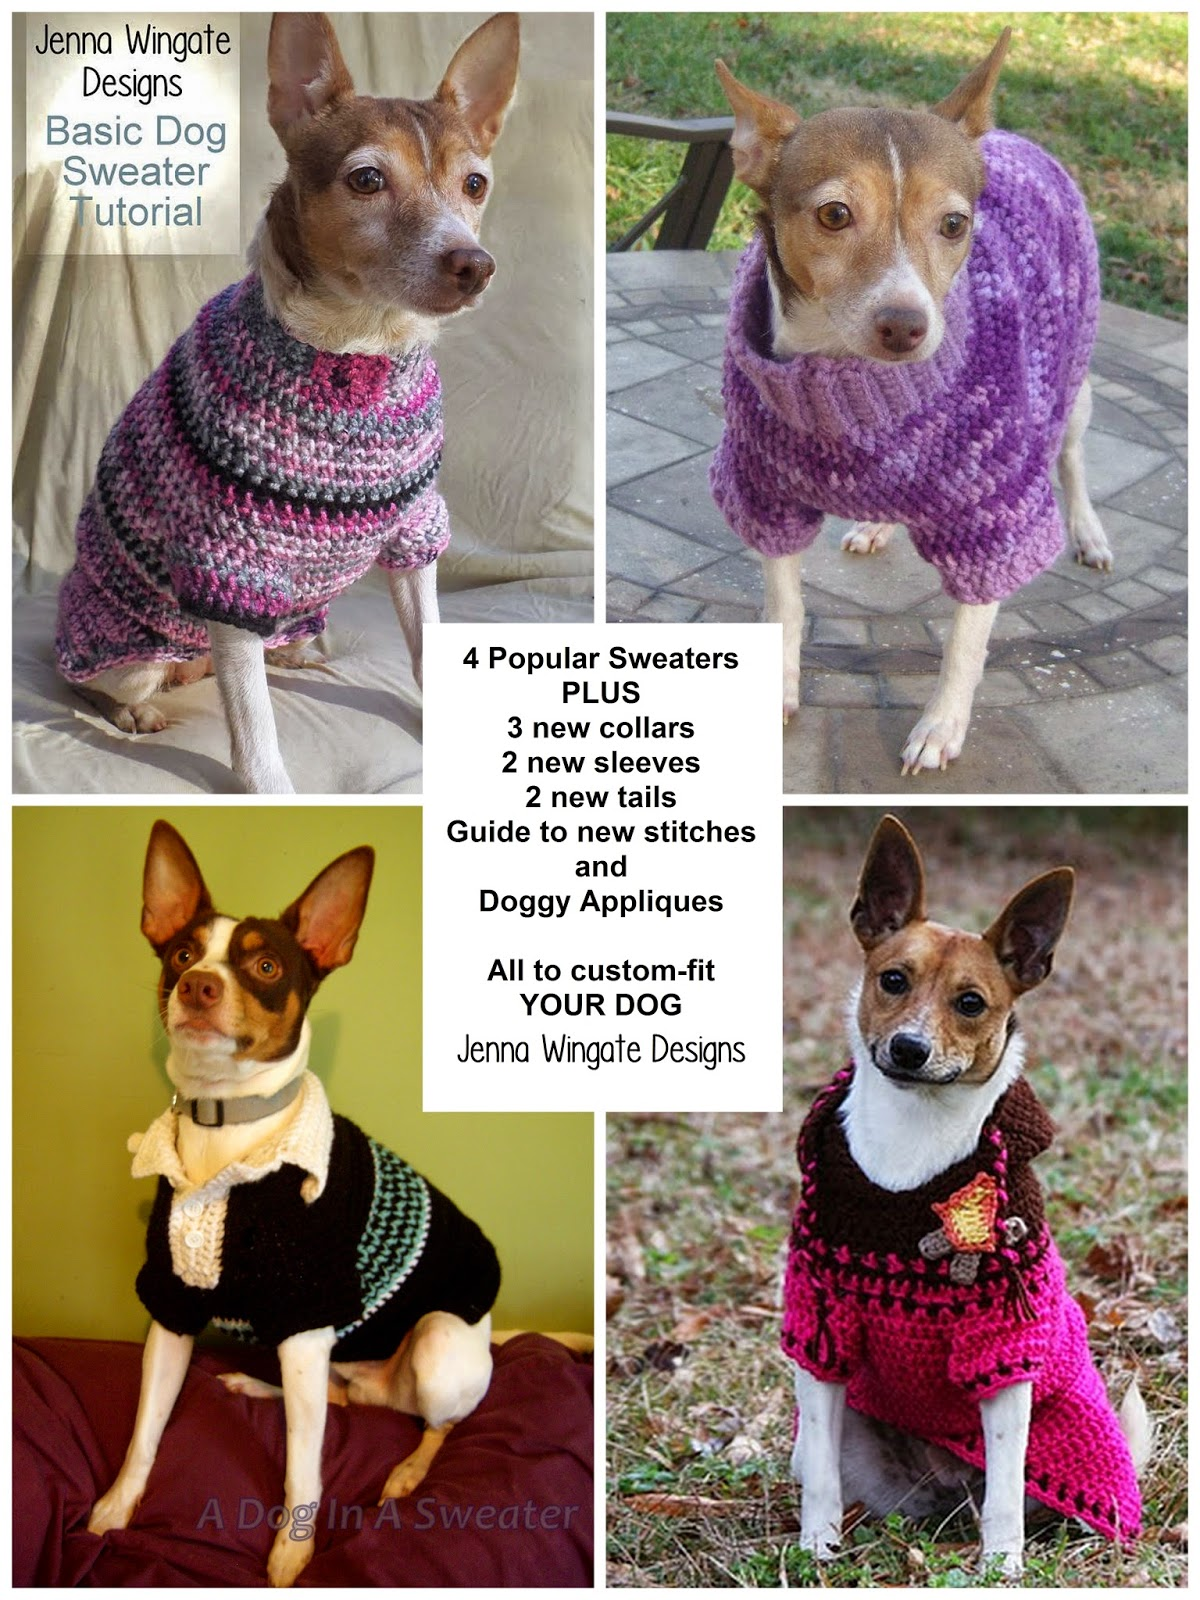 Jenna wingate designs custom fit dog sweater ebook custom fit dog sweater ebook fandeluxe Image collections